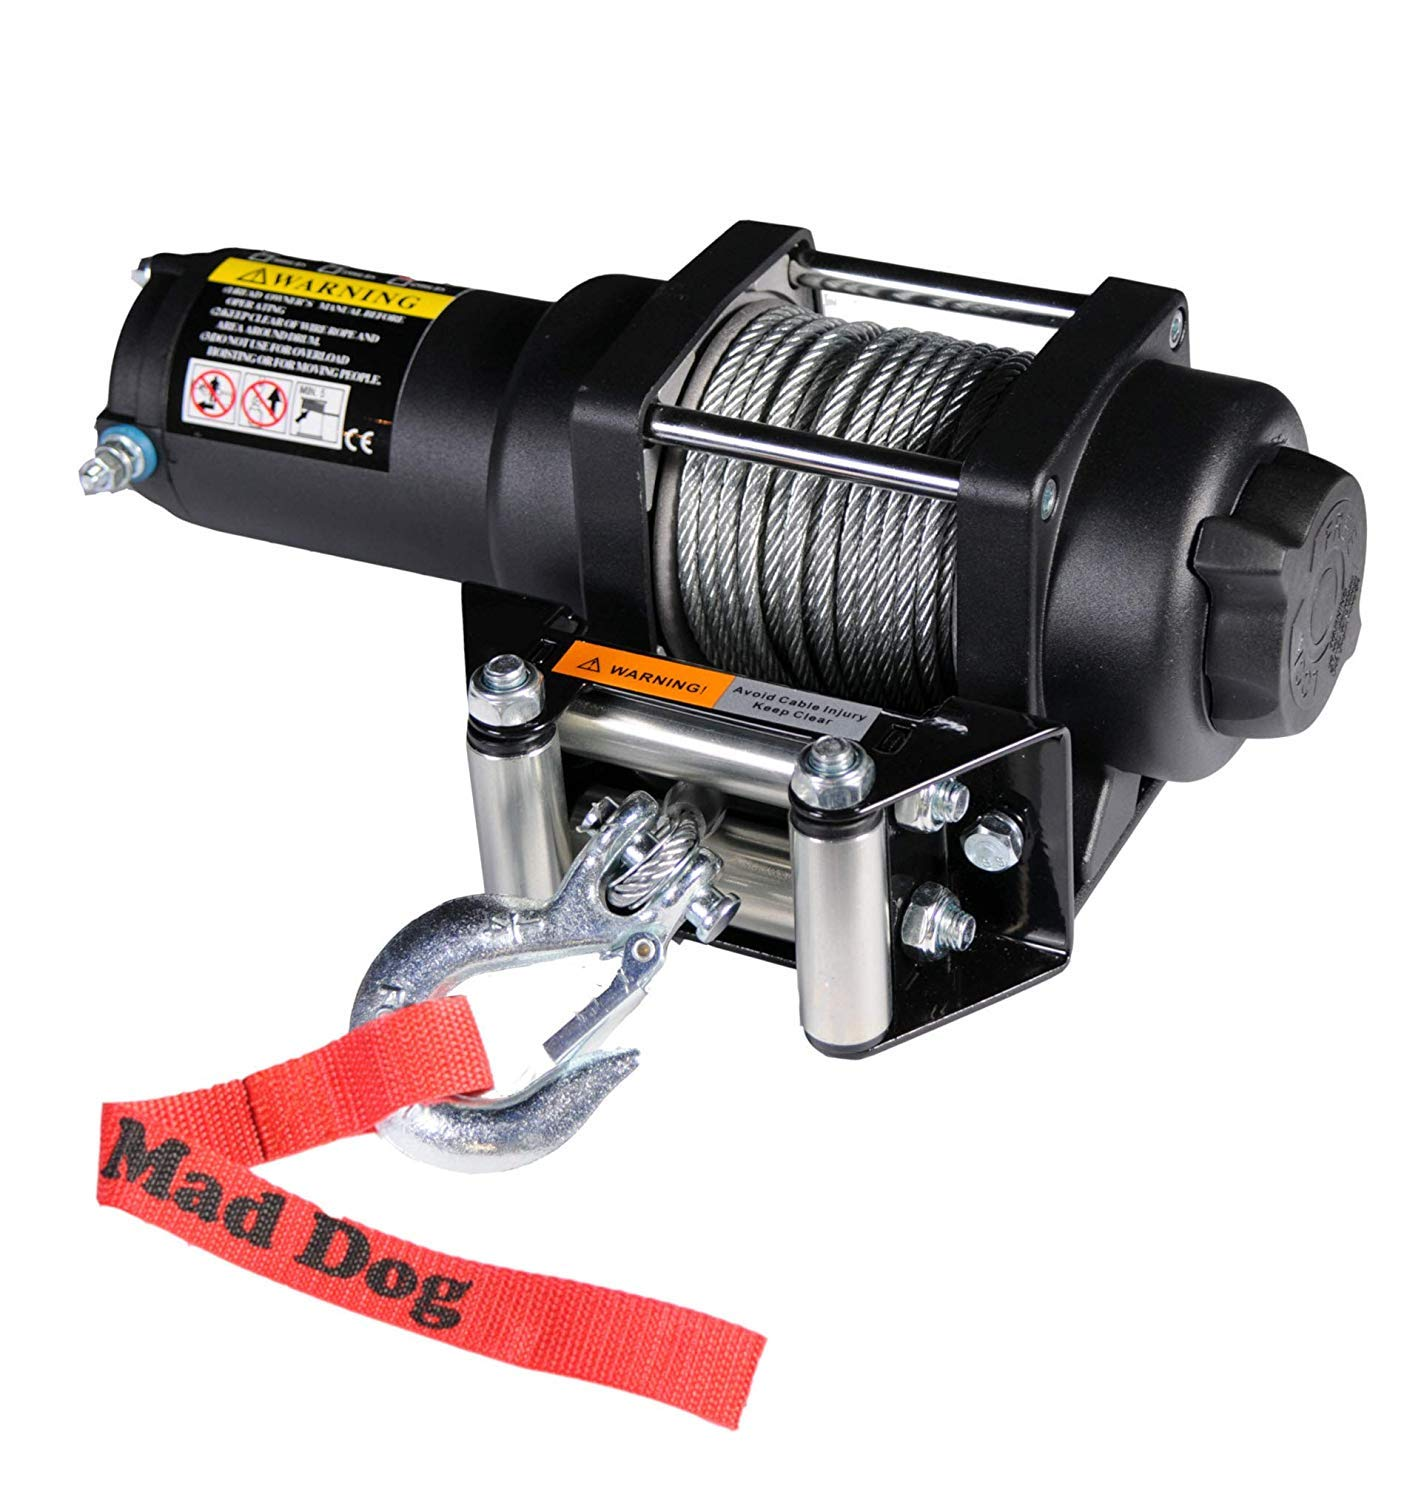 Mad Dog 2500# Winch Mount Combo Polaris 2009-2018 Sportsman 850 XP / 850 Touring / 850 Highlifter / 1000 XP / 1000 Touring